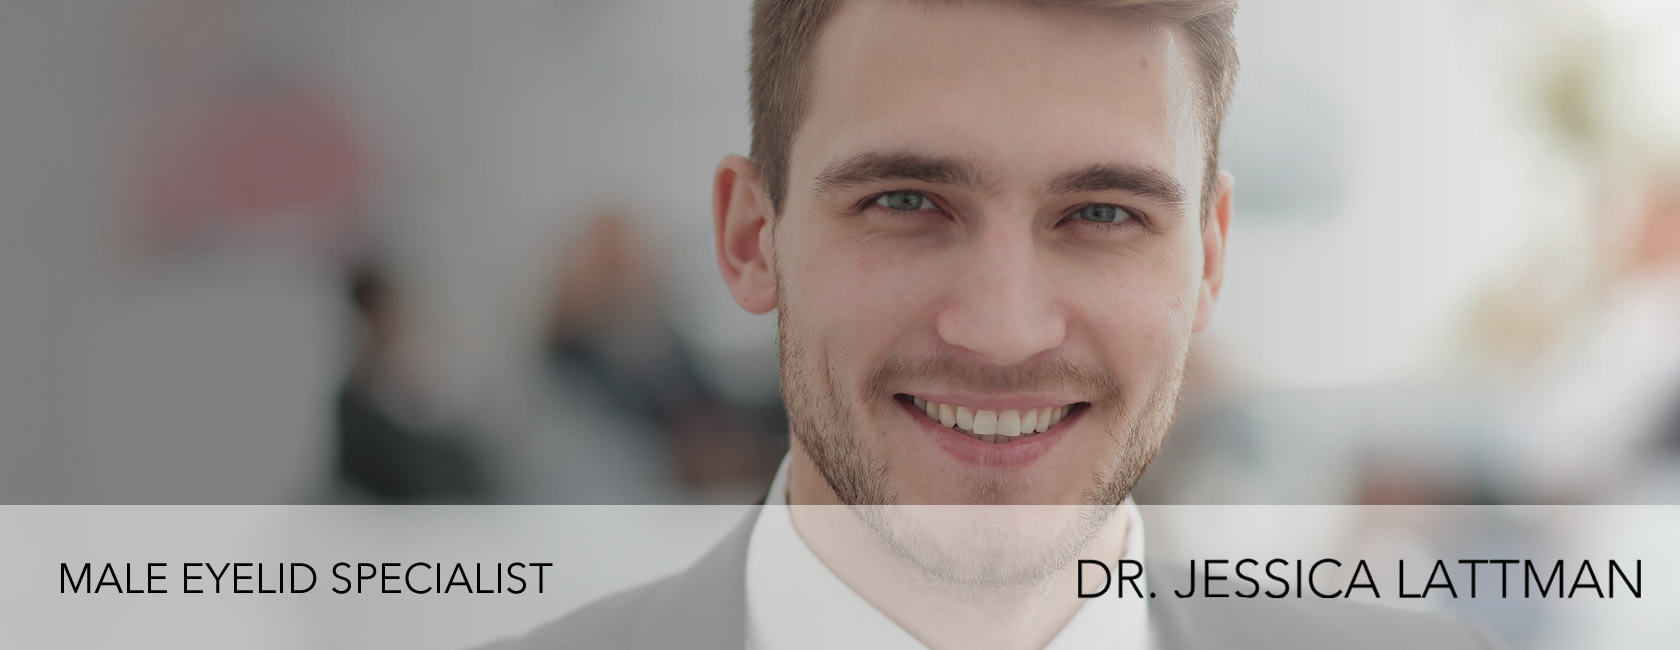 Male Eyelid Specialist New York City NYC